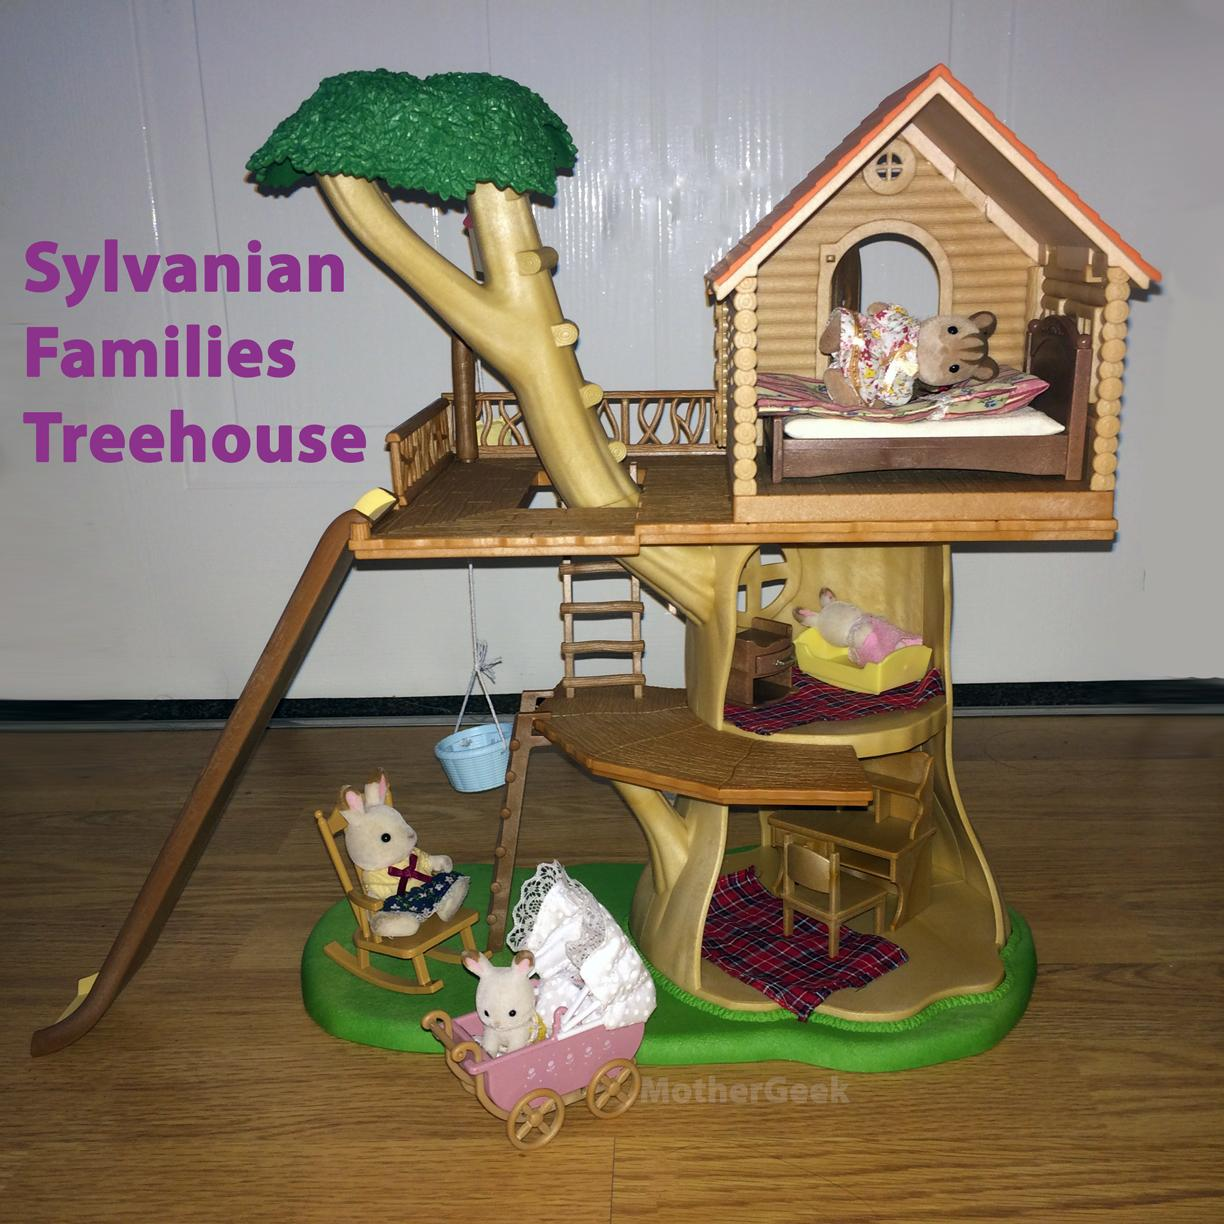 Sylvanian Families Treehouse furnished